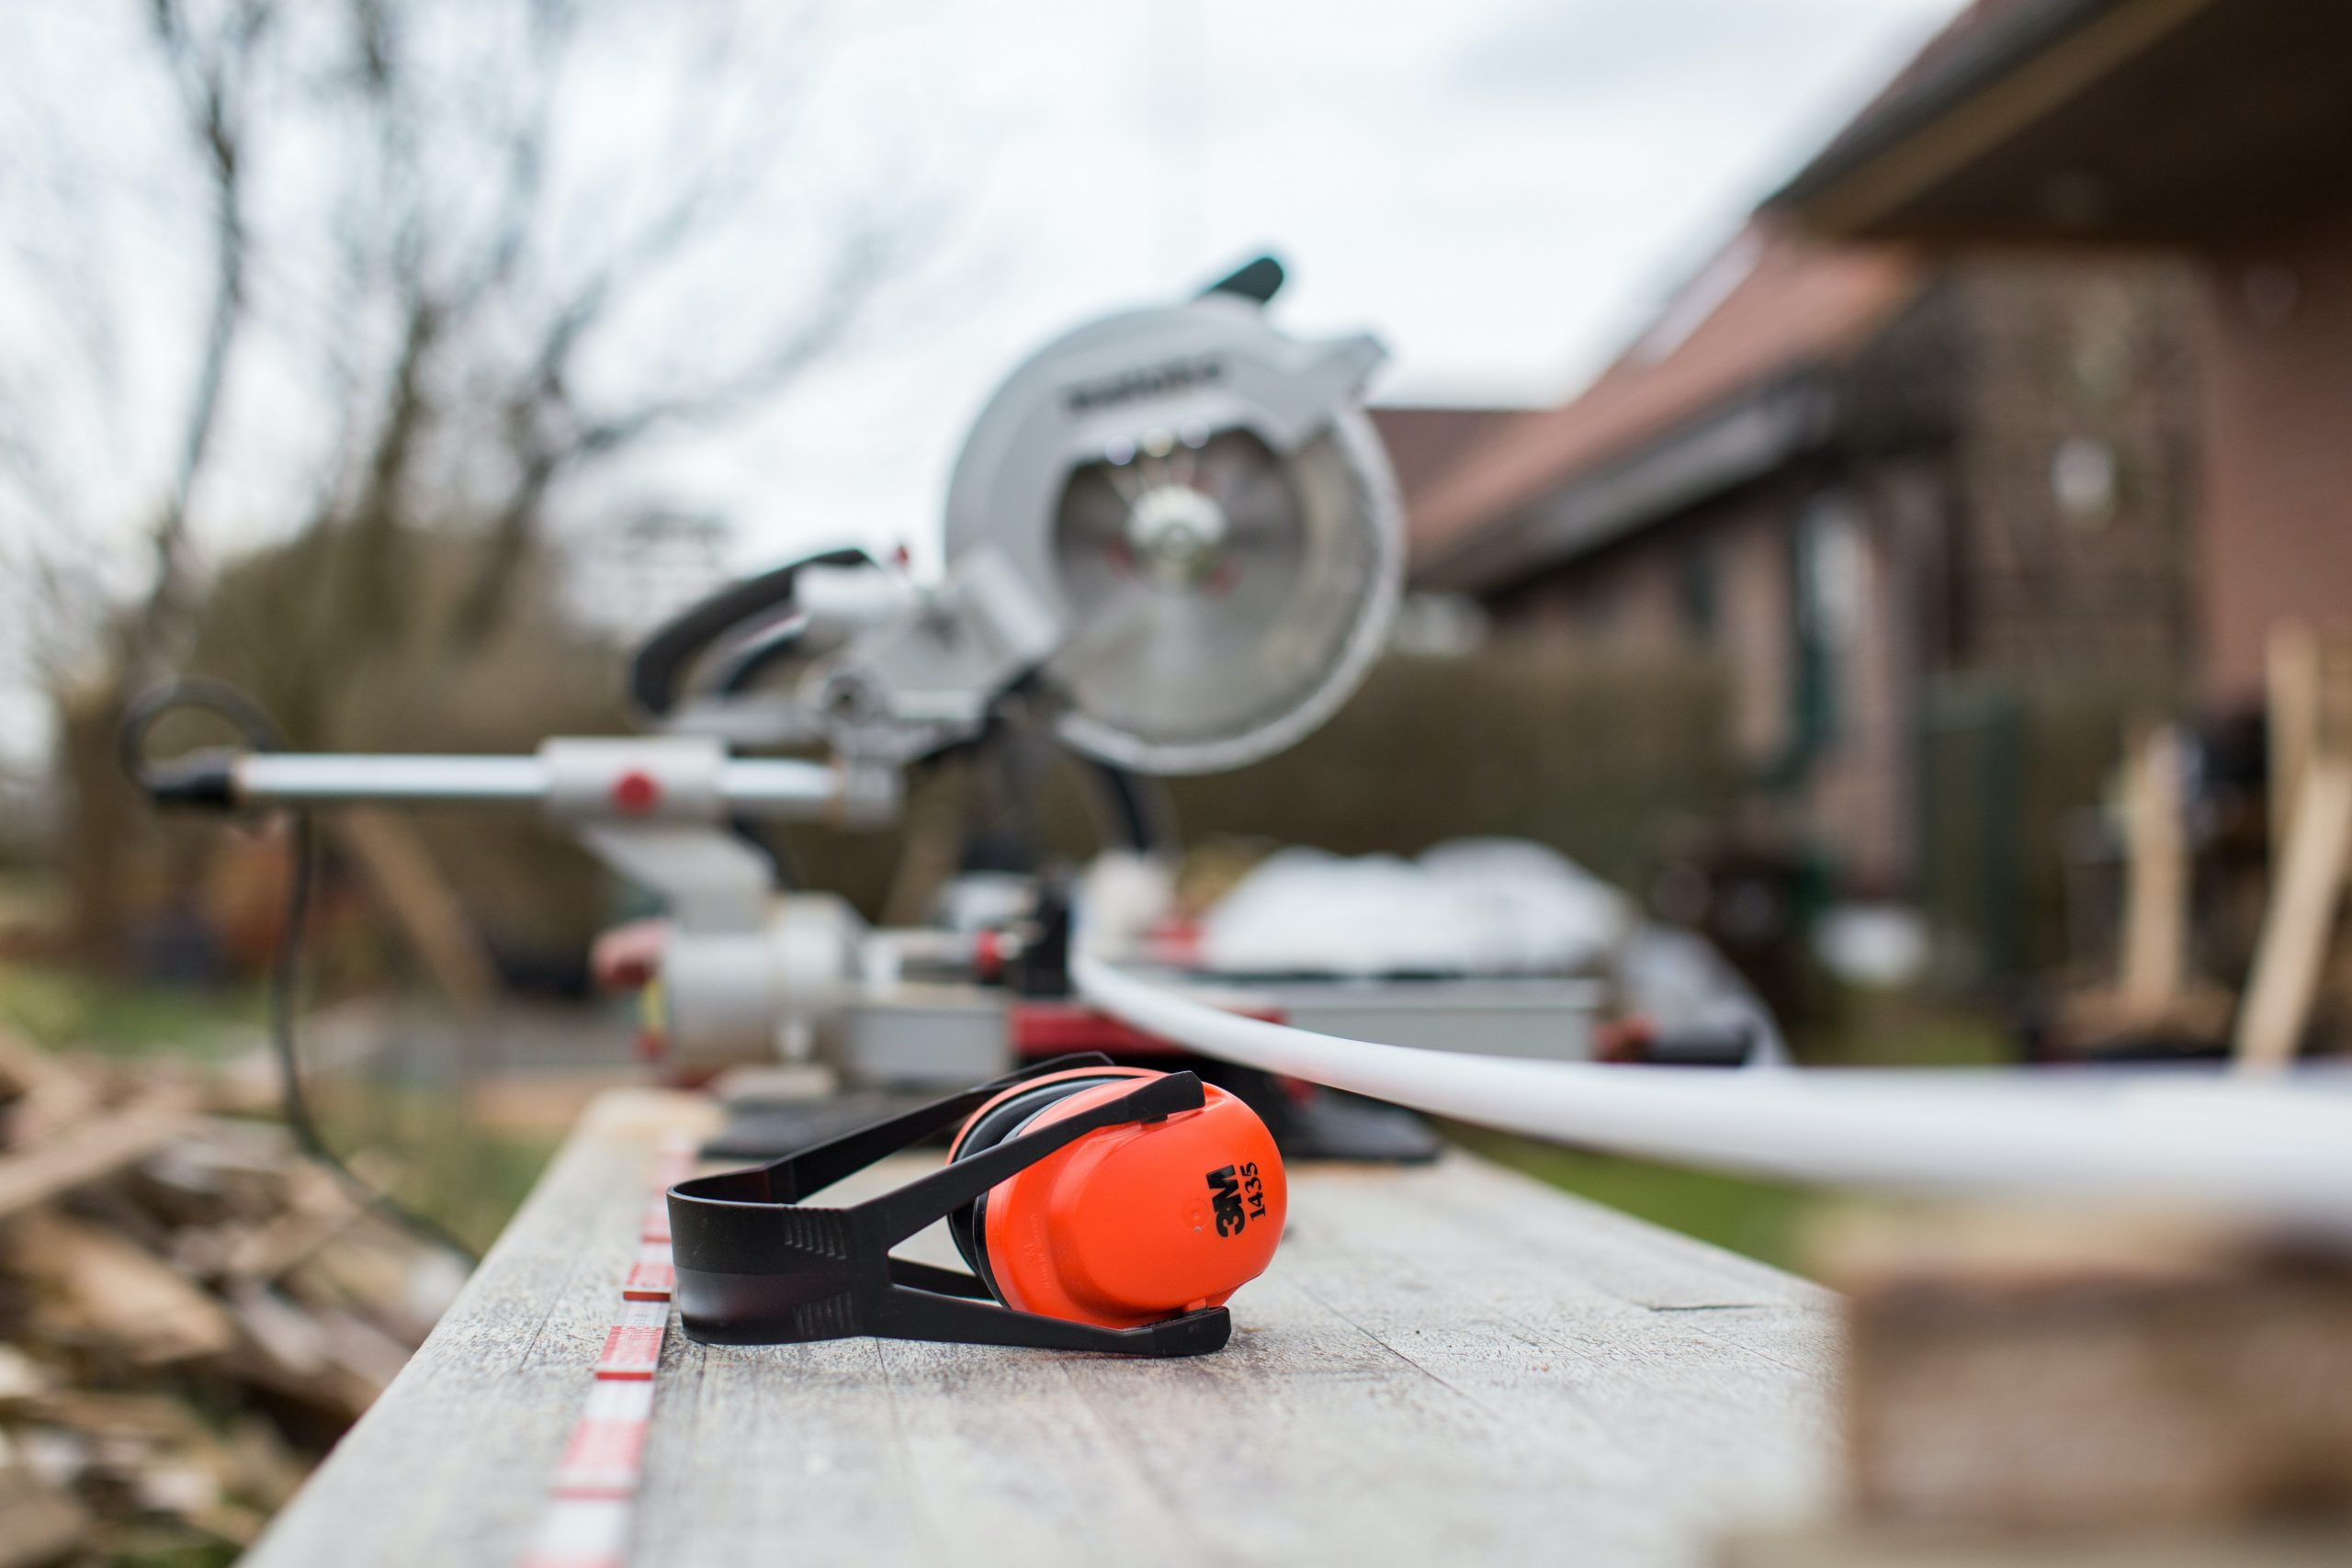 orange noice cancelling headphones sitting on a piece of wood next to a circular saw outside a home